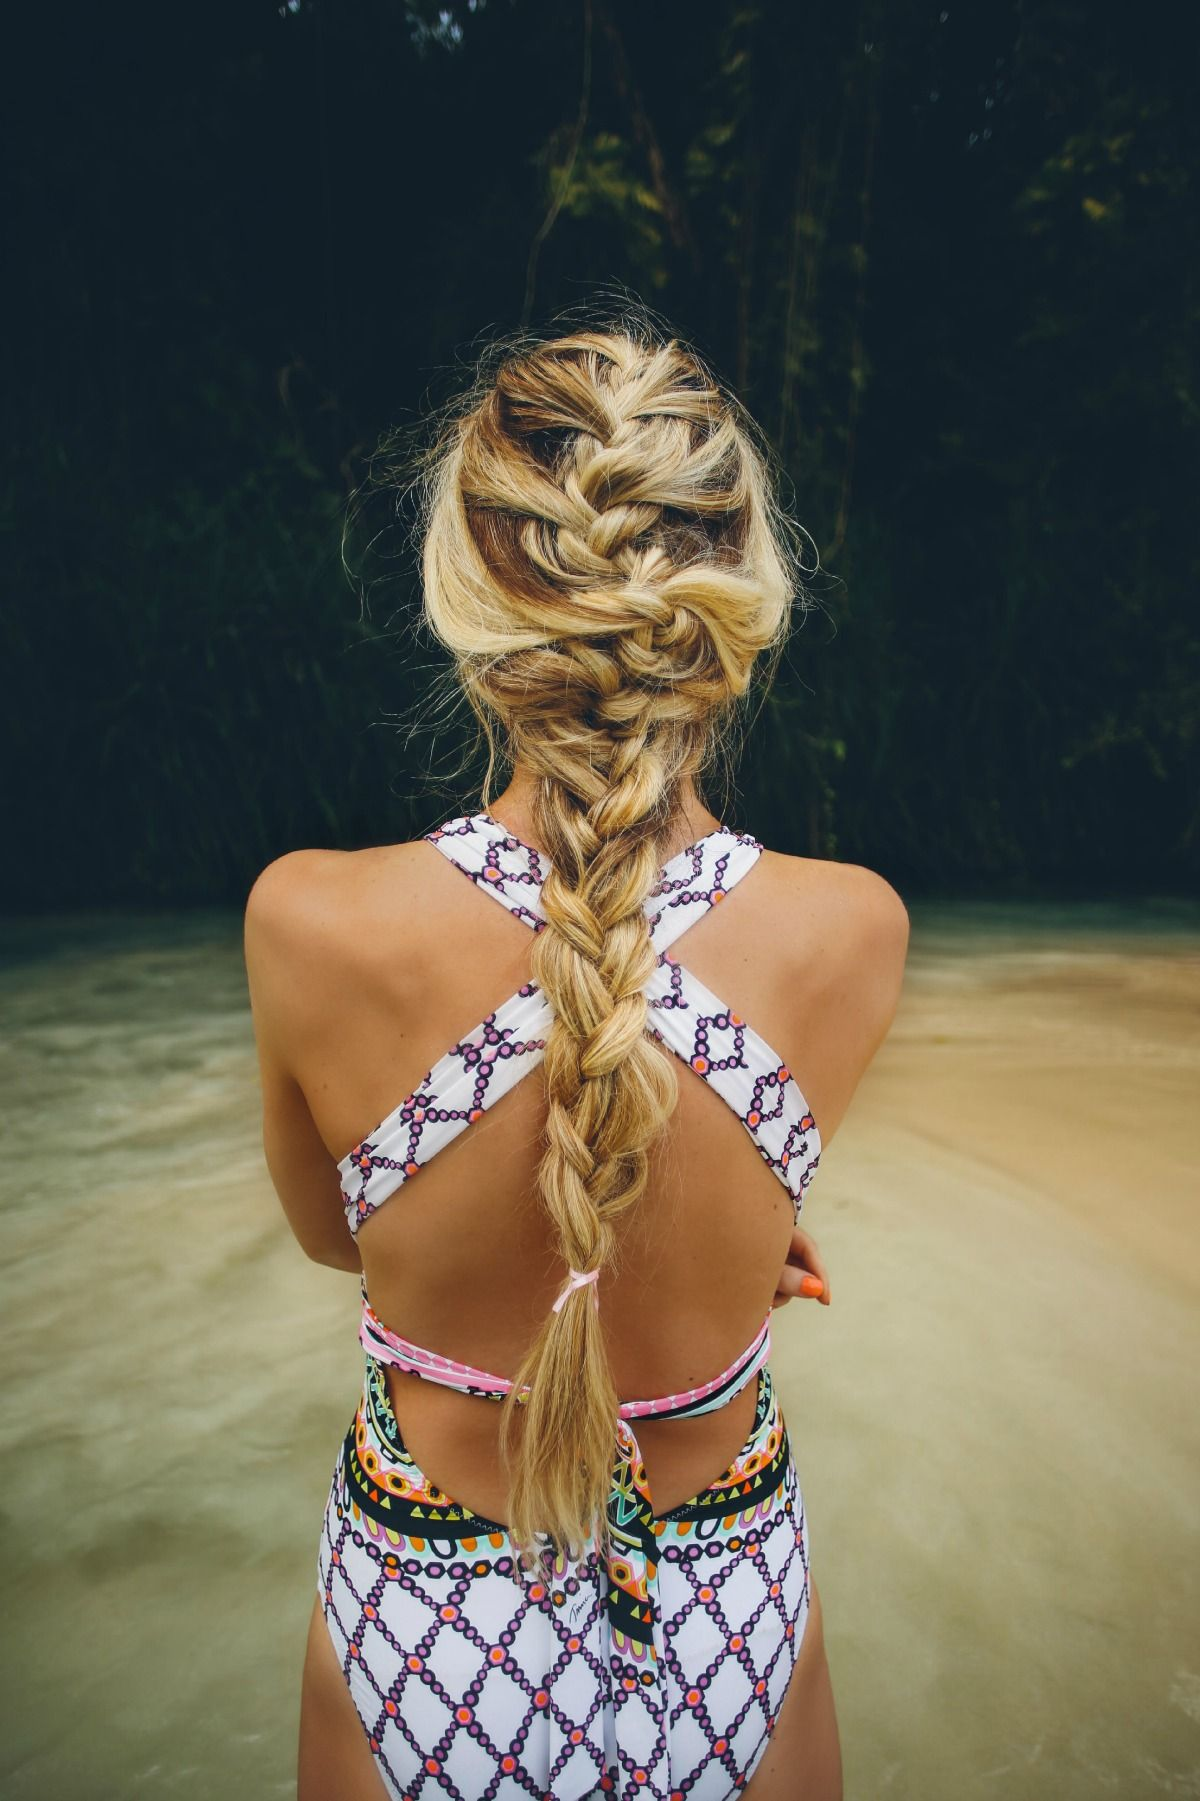 Free French braids are one of my go to styles for yoga and beach days - image via Barefoot Blonde